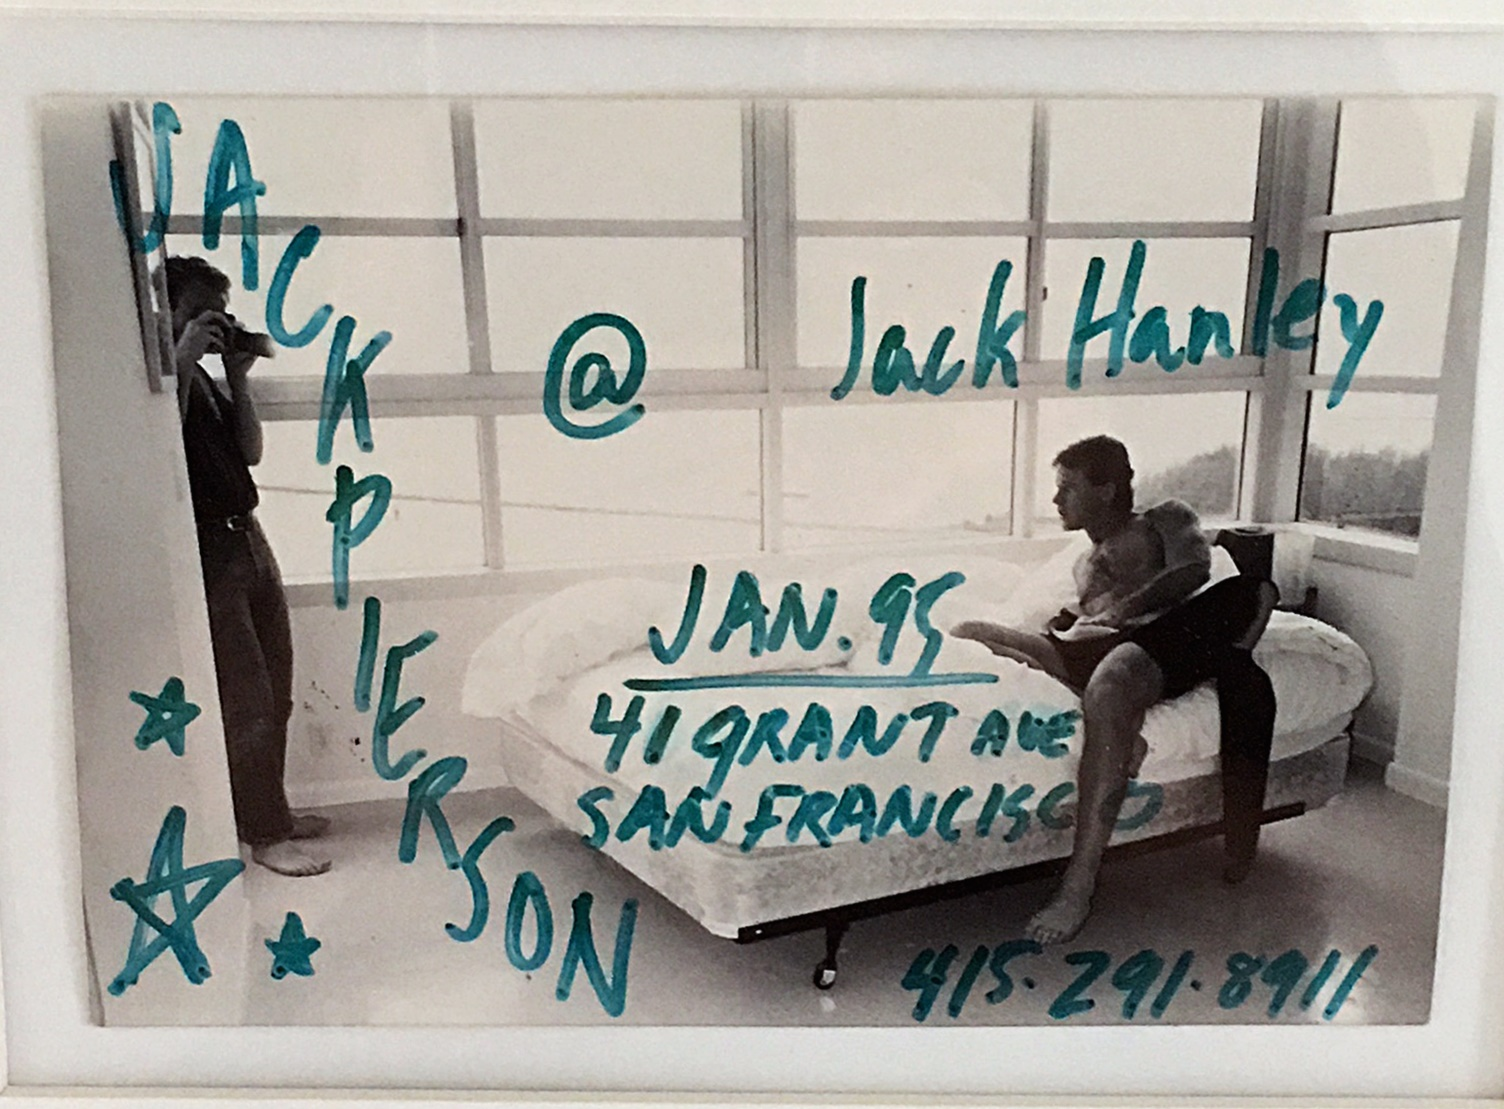 Jack Pierson  photo and drawing for poster,  Jack Hanley Gallery , 1995.